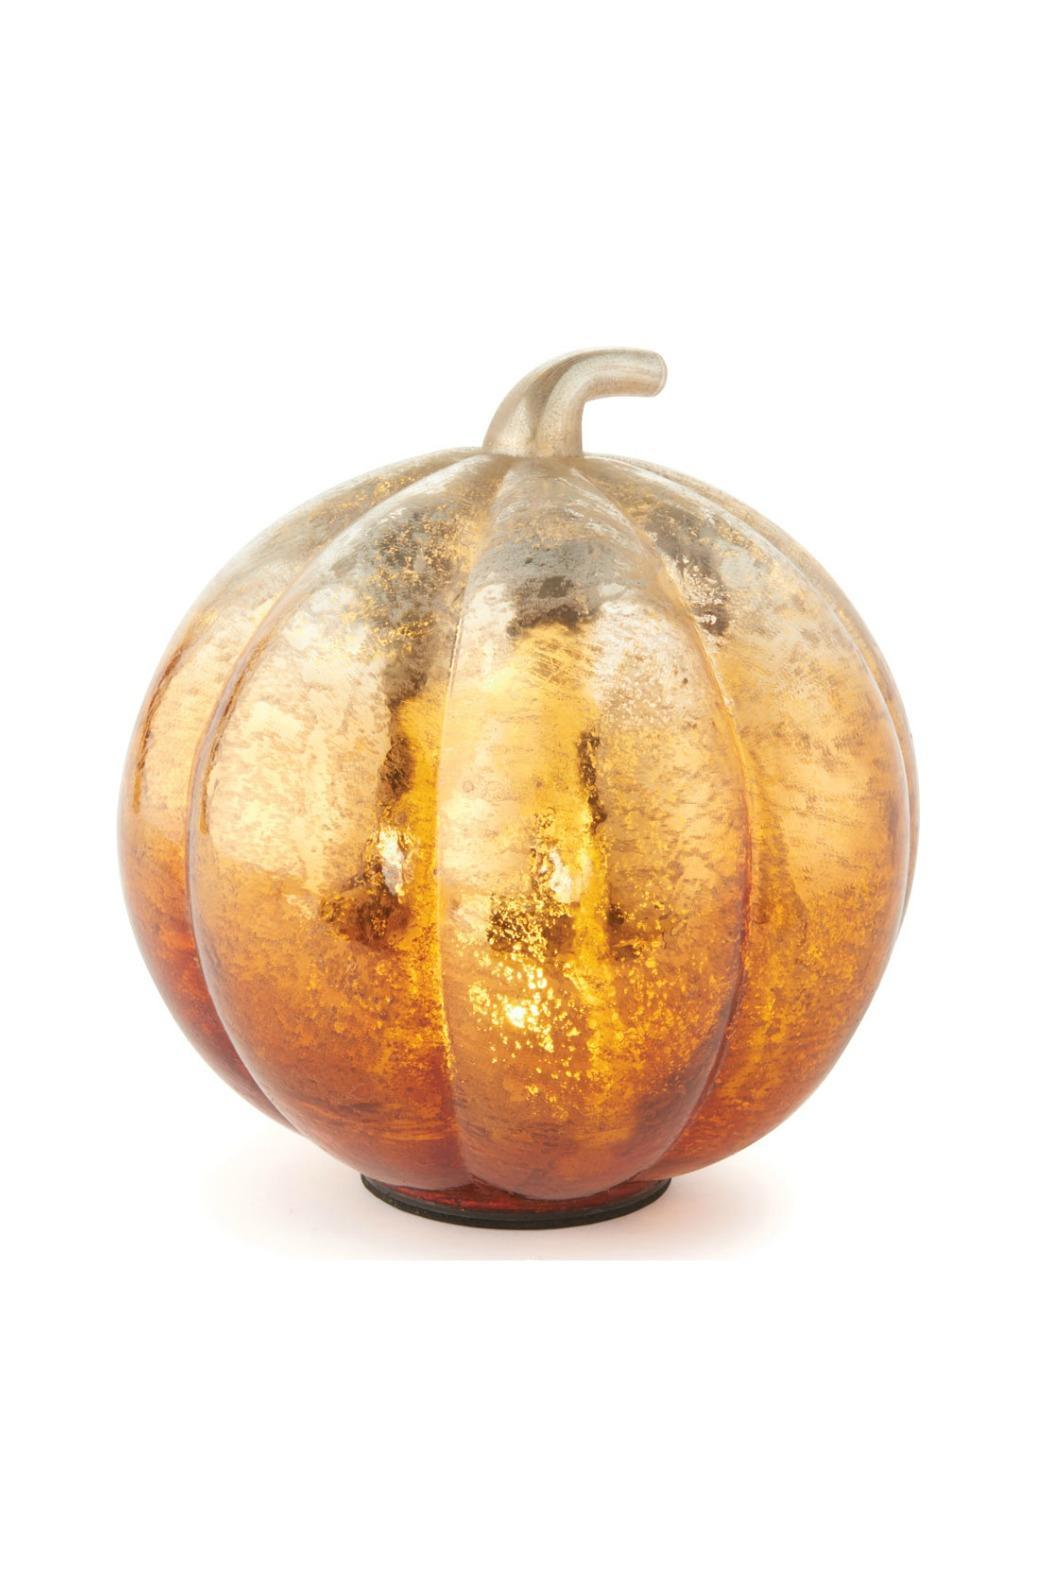 Excellent Garden Pottery Napa Home Napa Home Garden Large Led Pumpkin Front Cropped Image Napa Home Garden Large Led Pumpkin From Minnesota By Rustica Napa Home Garden Lanterns houzz 01 Napa Home And Garden